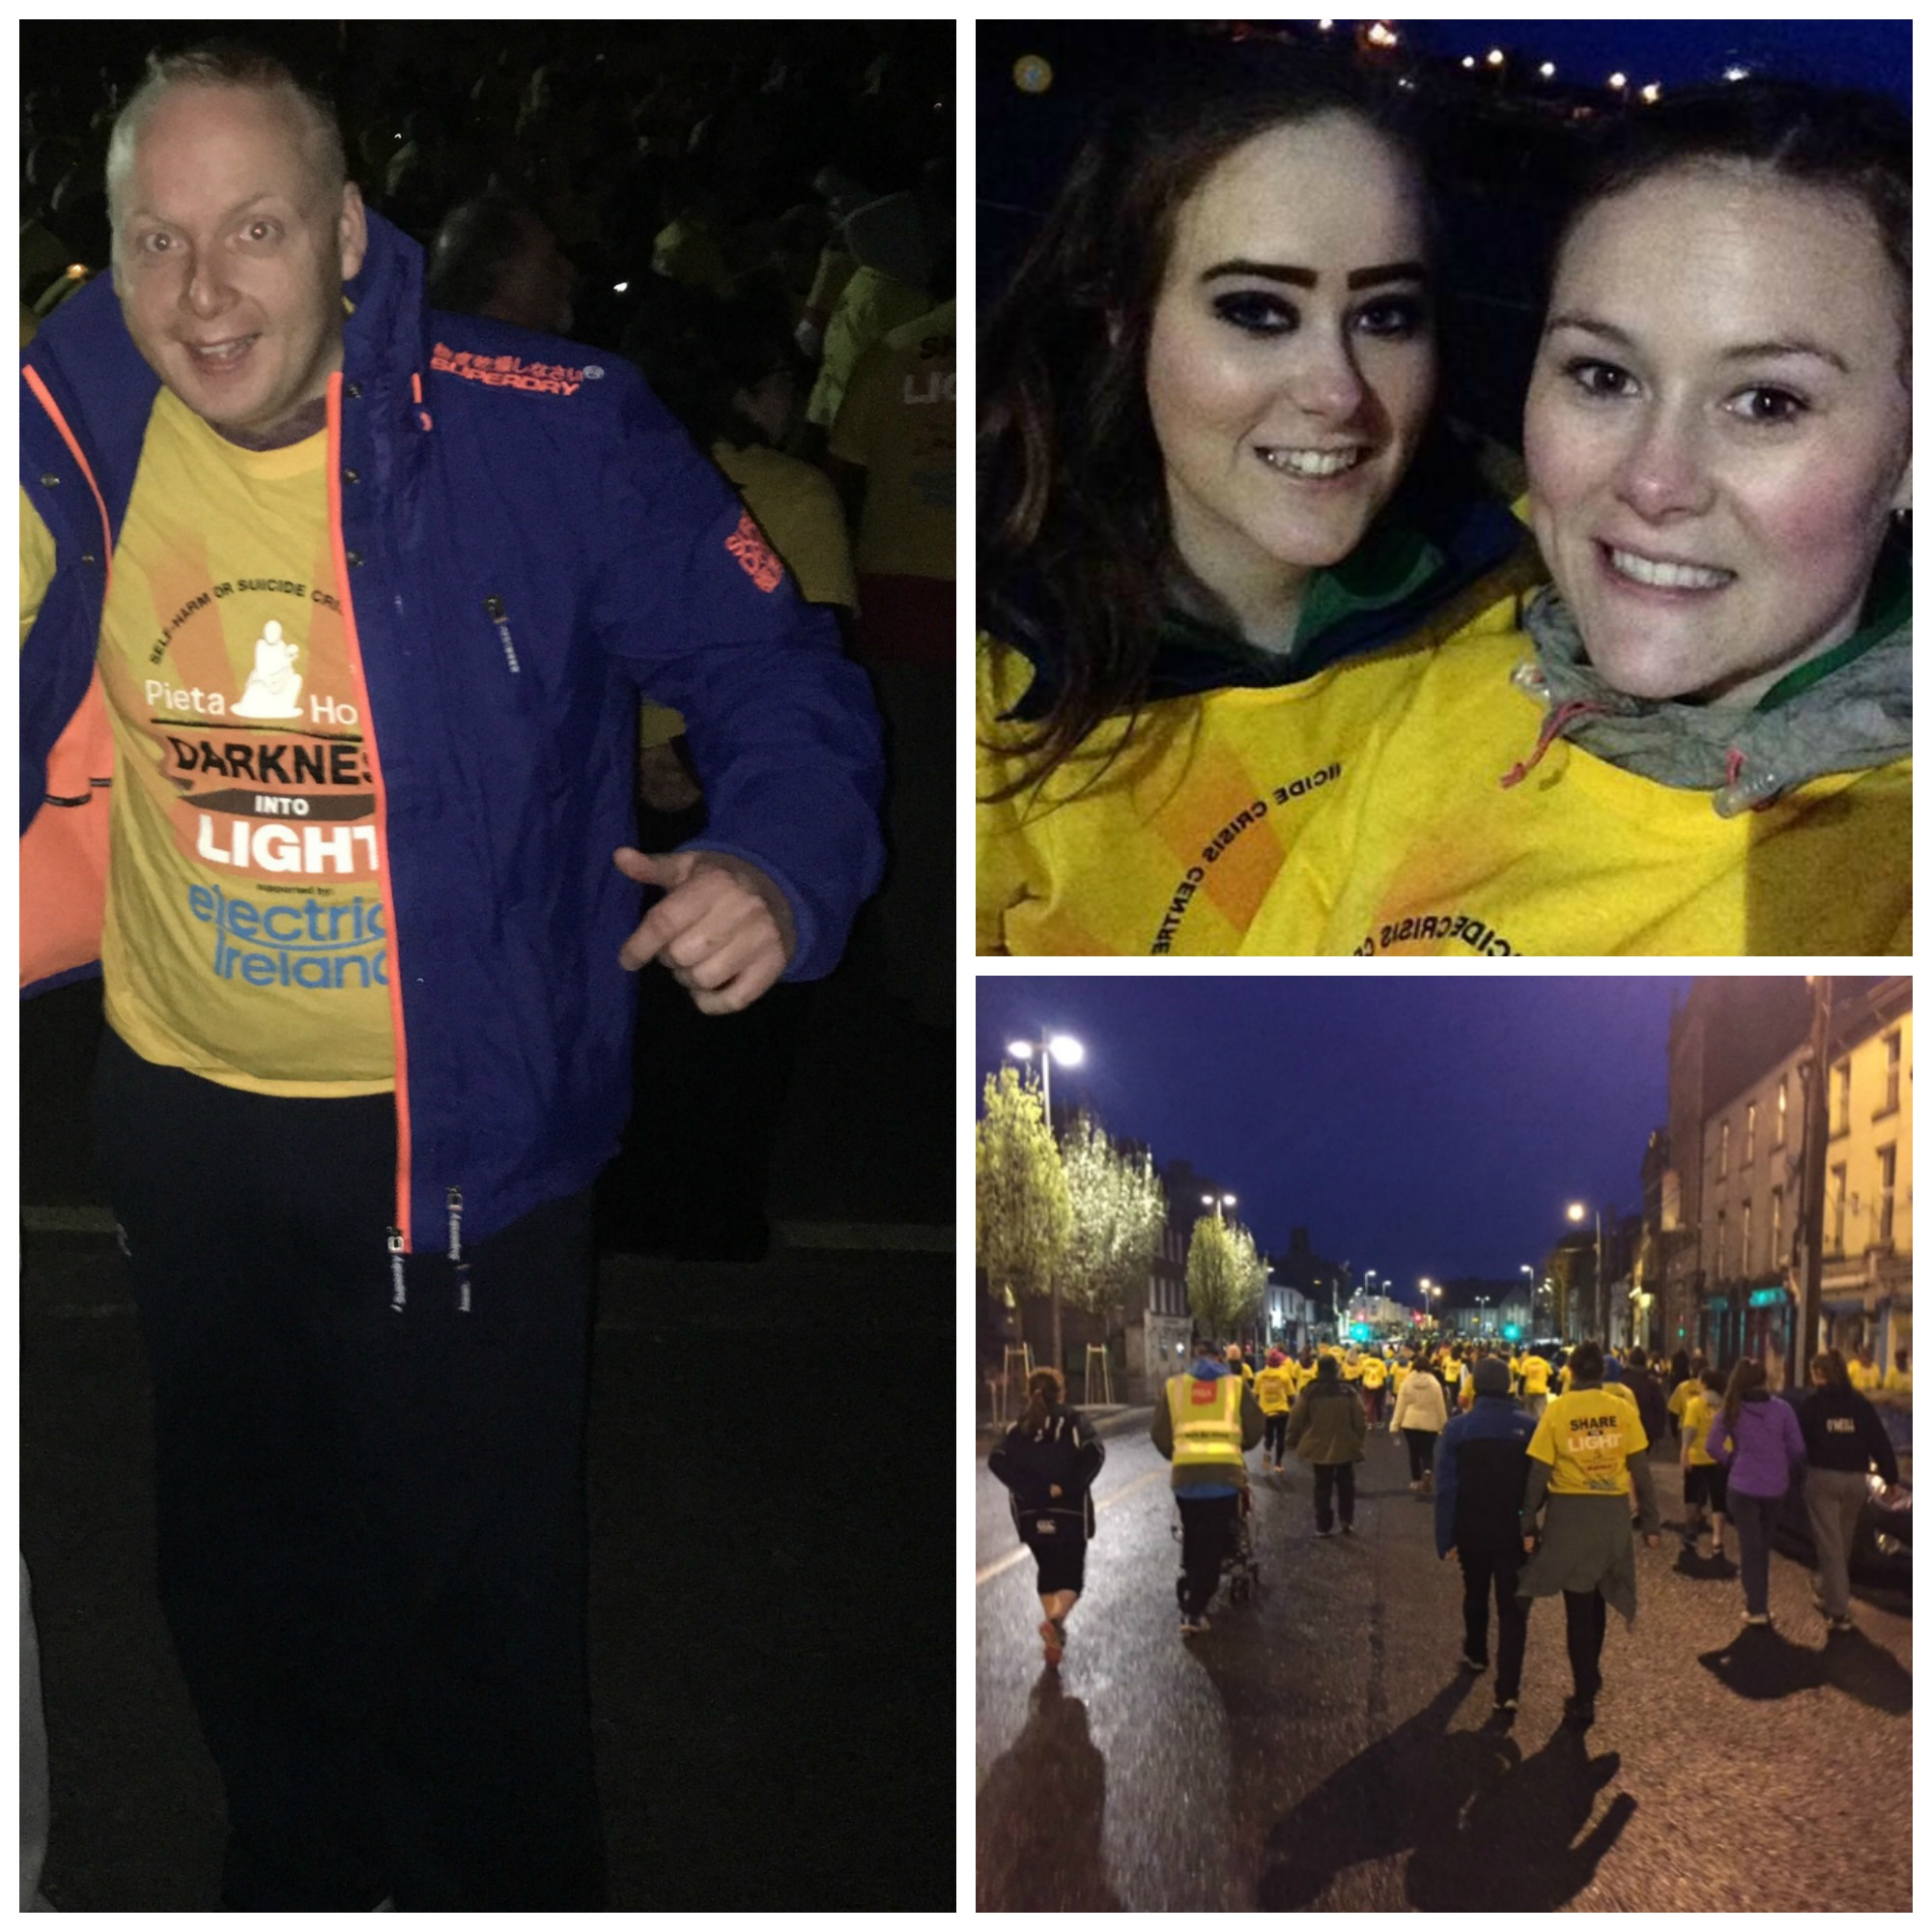 Darkness Into Light Collage